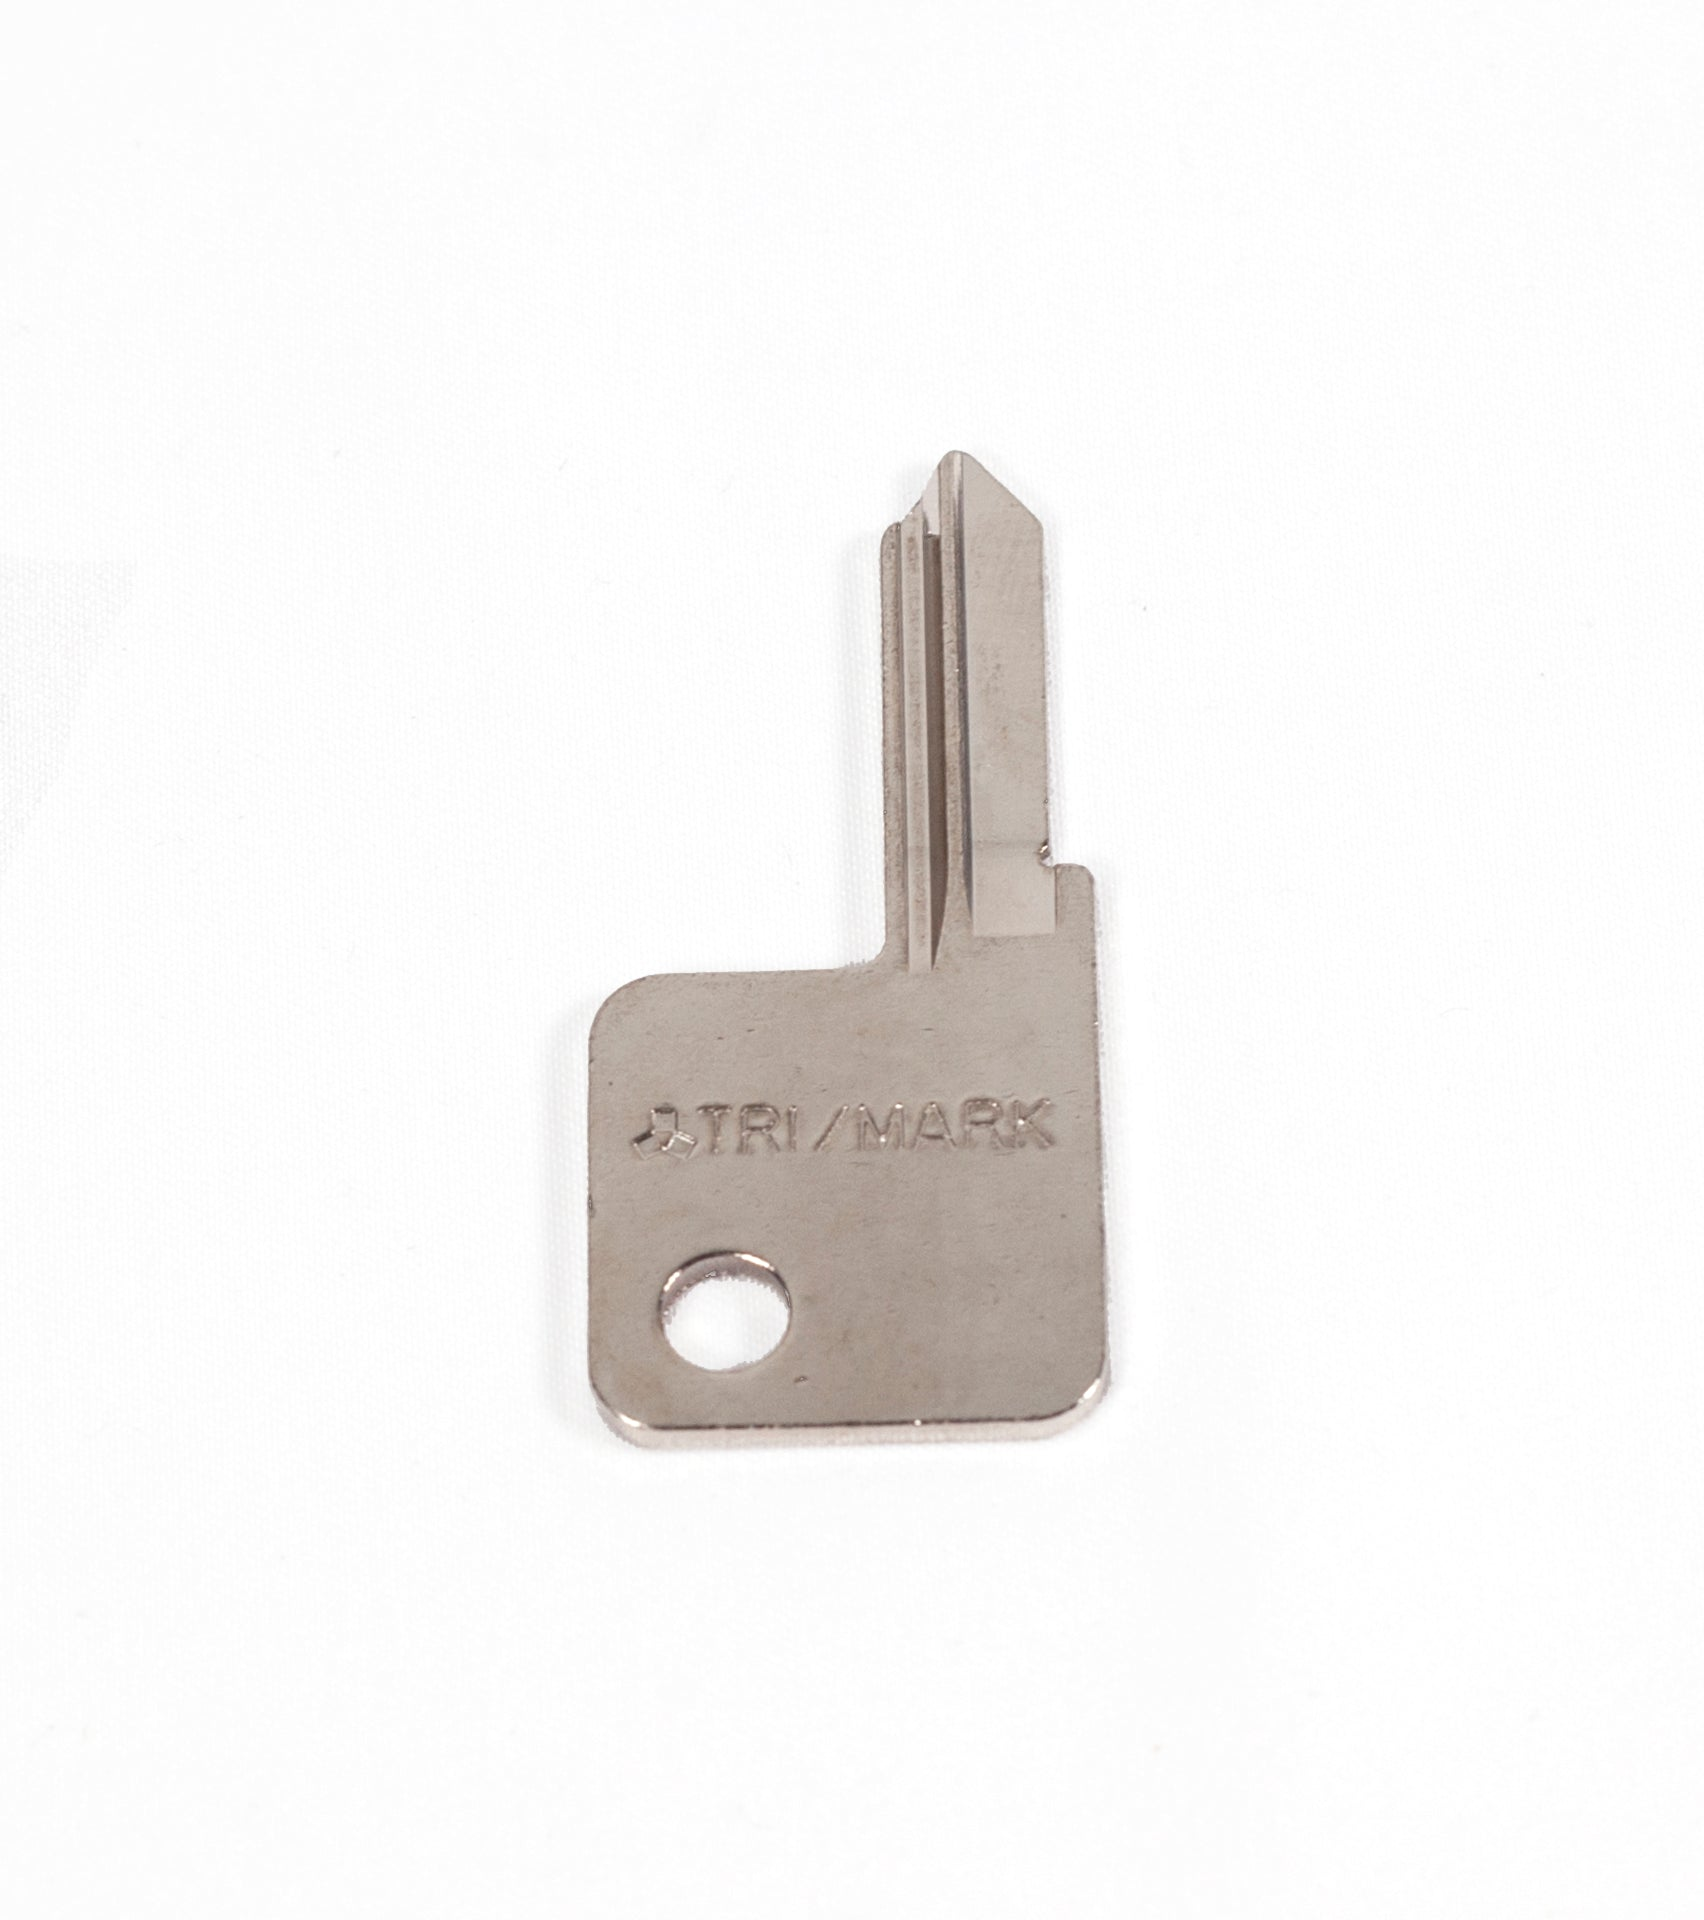 Airstream trailer or motorhome entry door key blank - Airstream Life